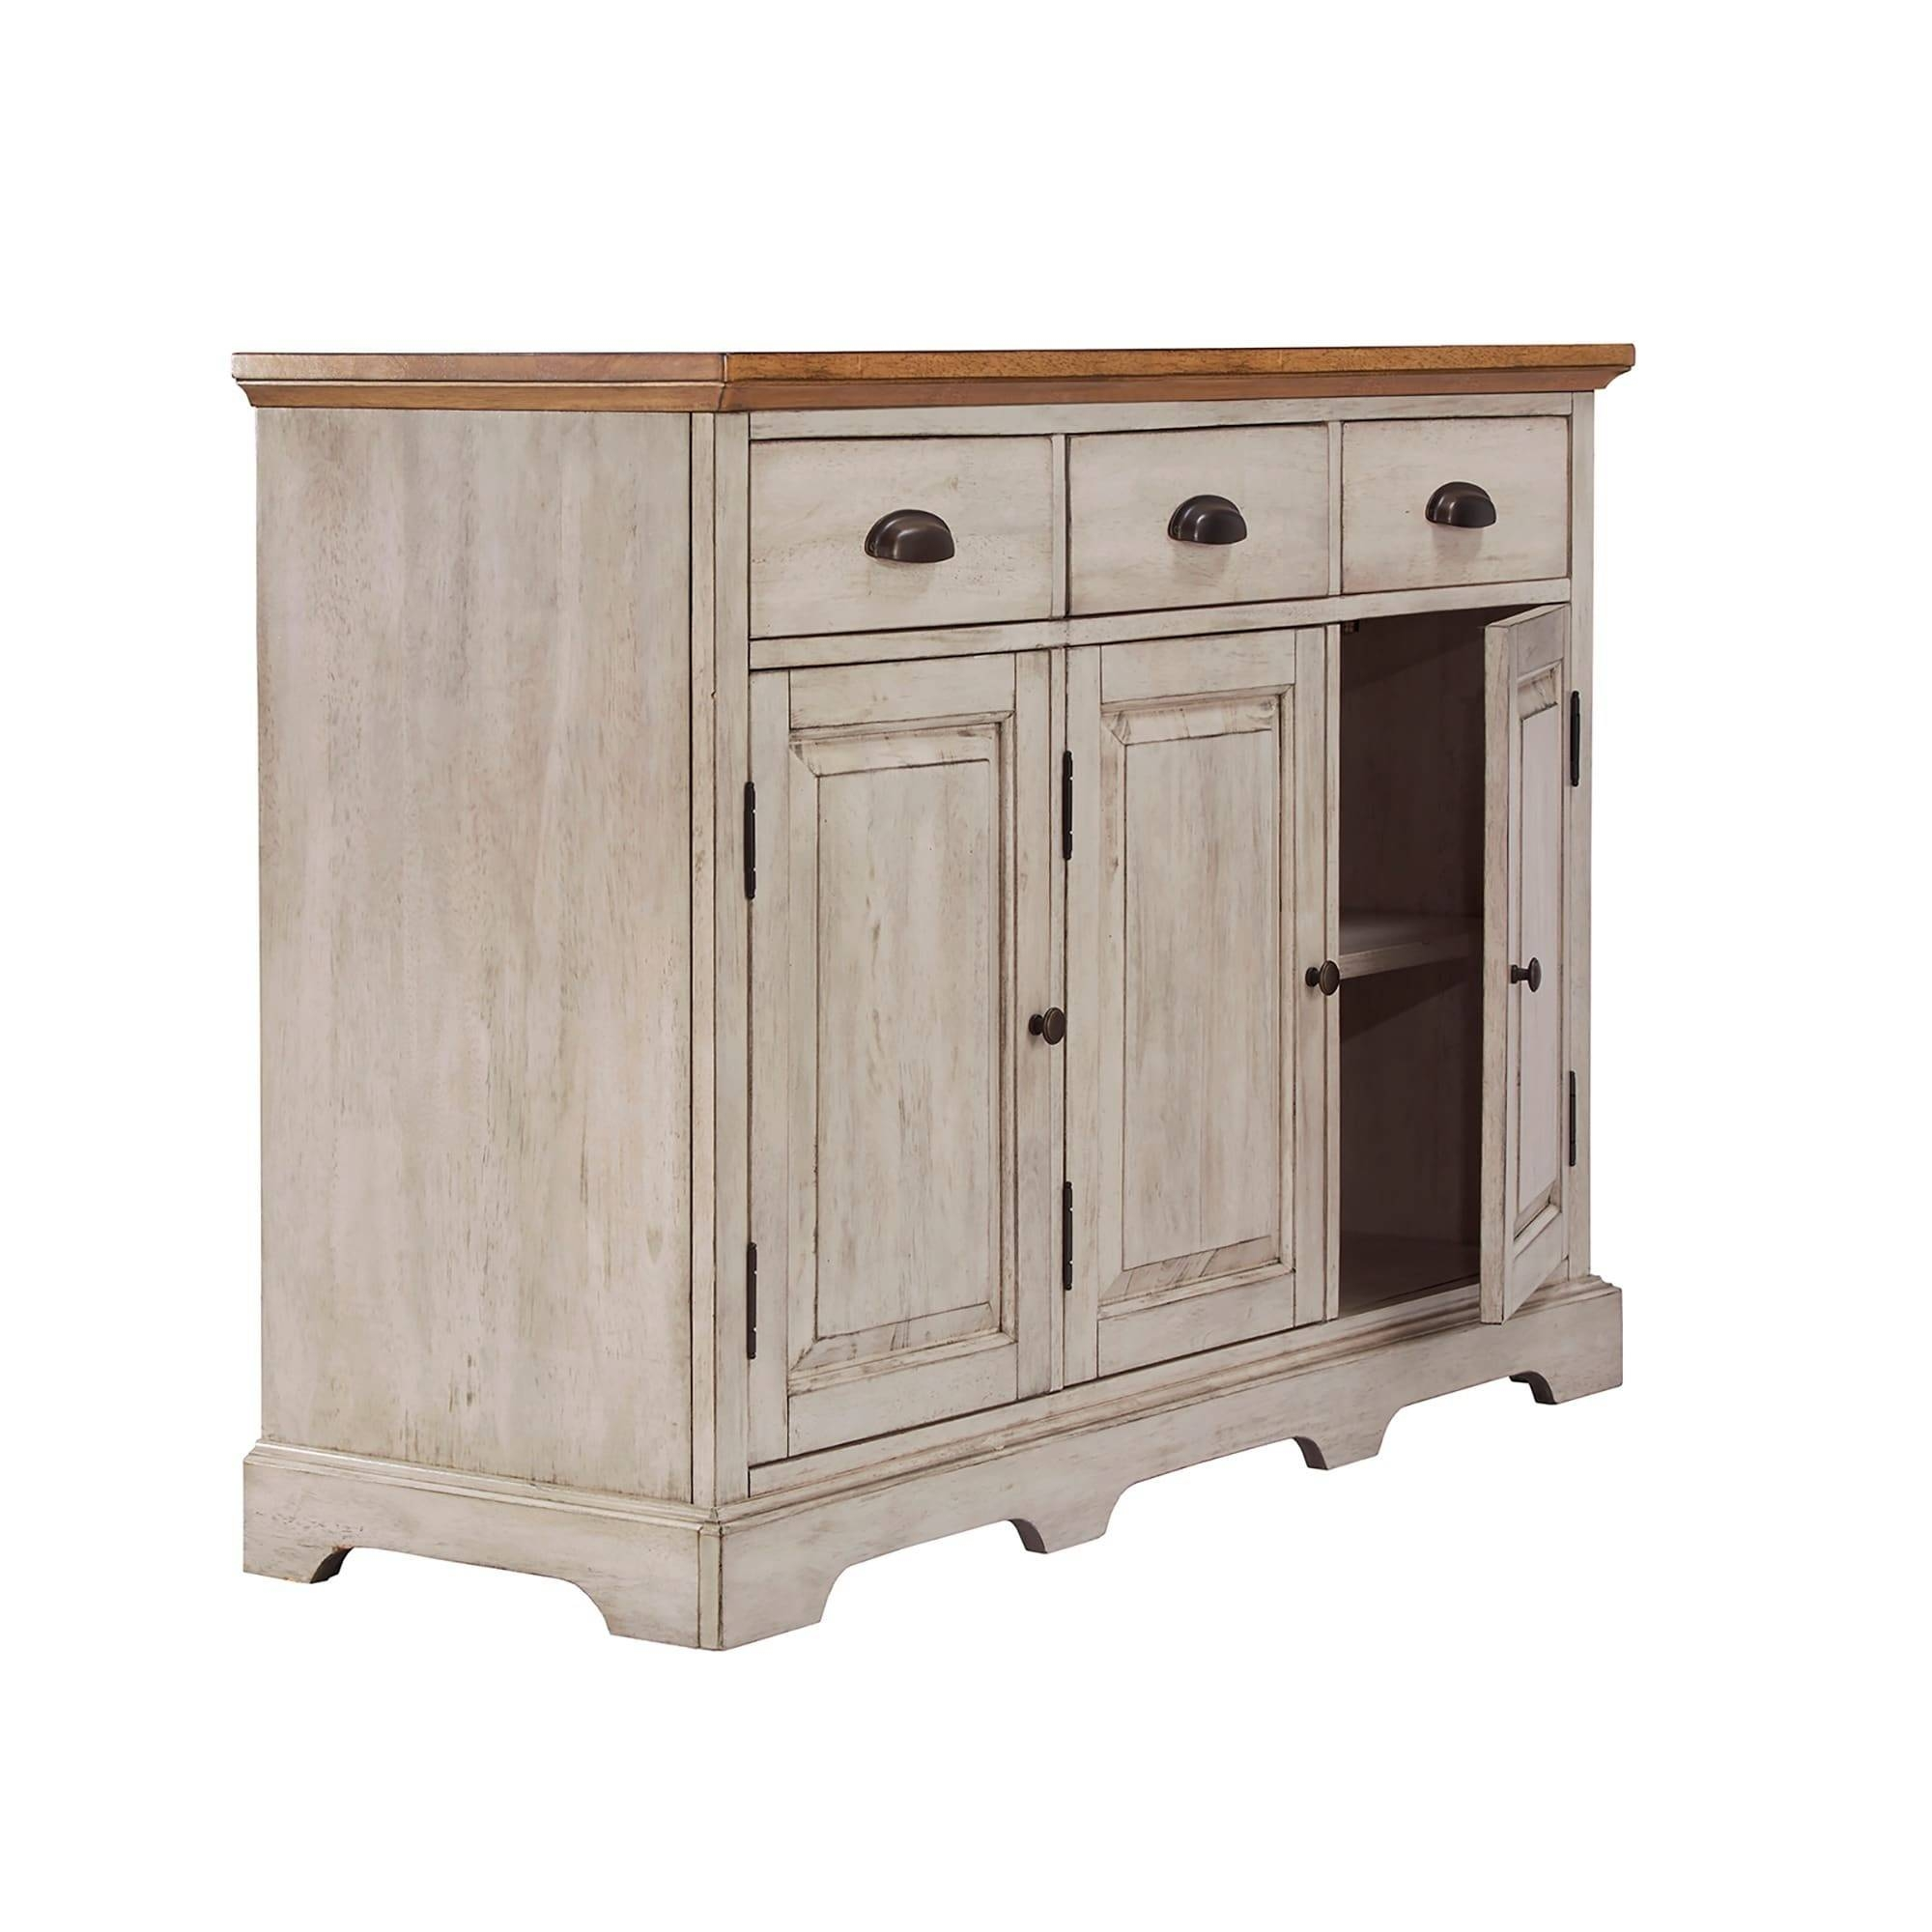 Eleanor Two Tone Wood Cabinet Buffet Serverinspire Q Classic Pertaining To 50 Inch Sideboards (View 11 of 15)